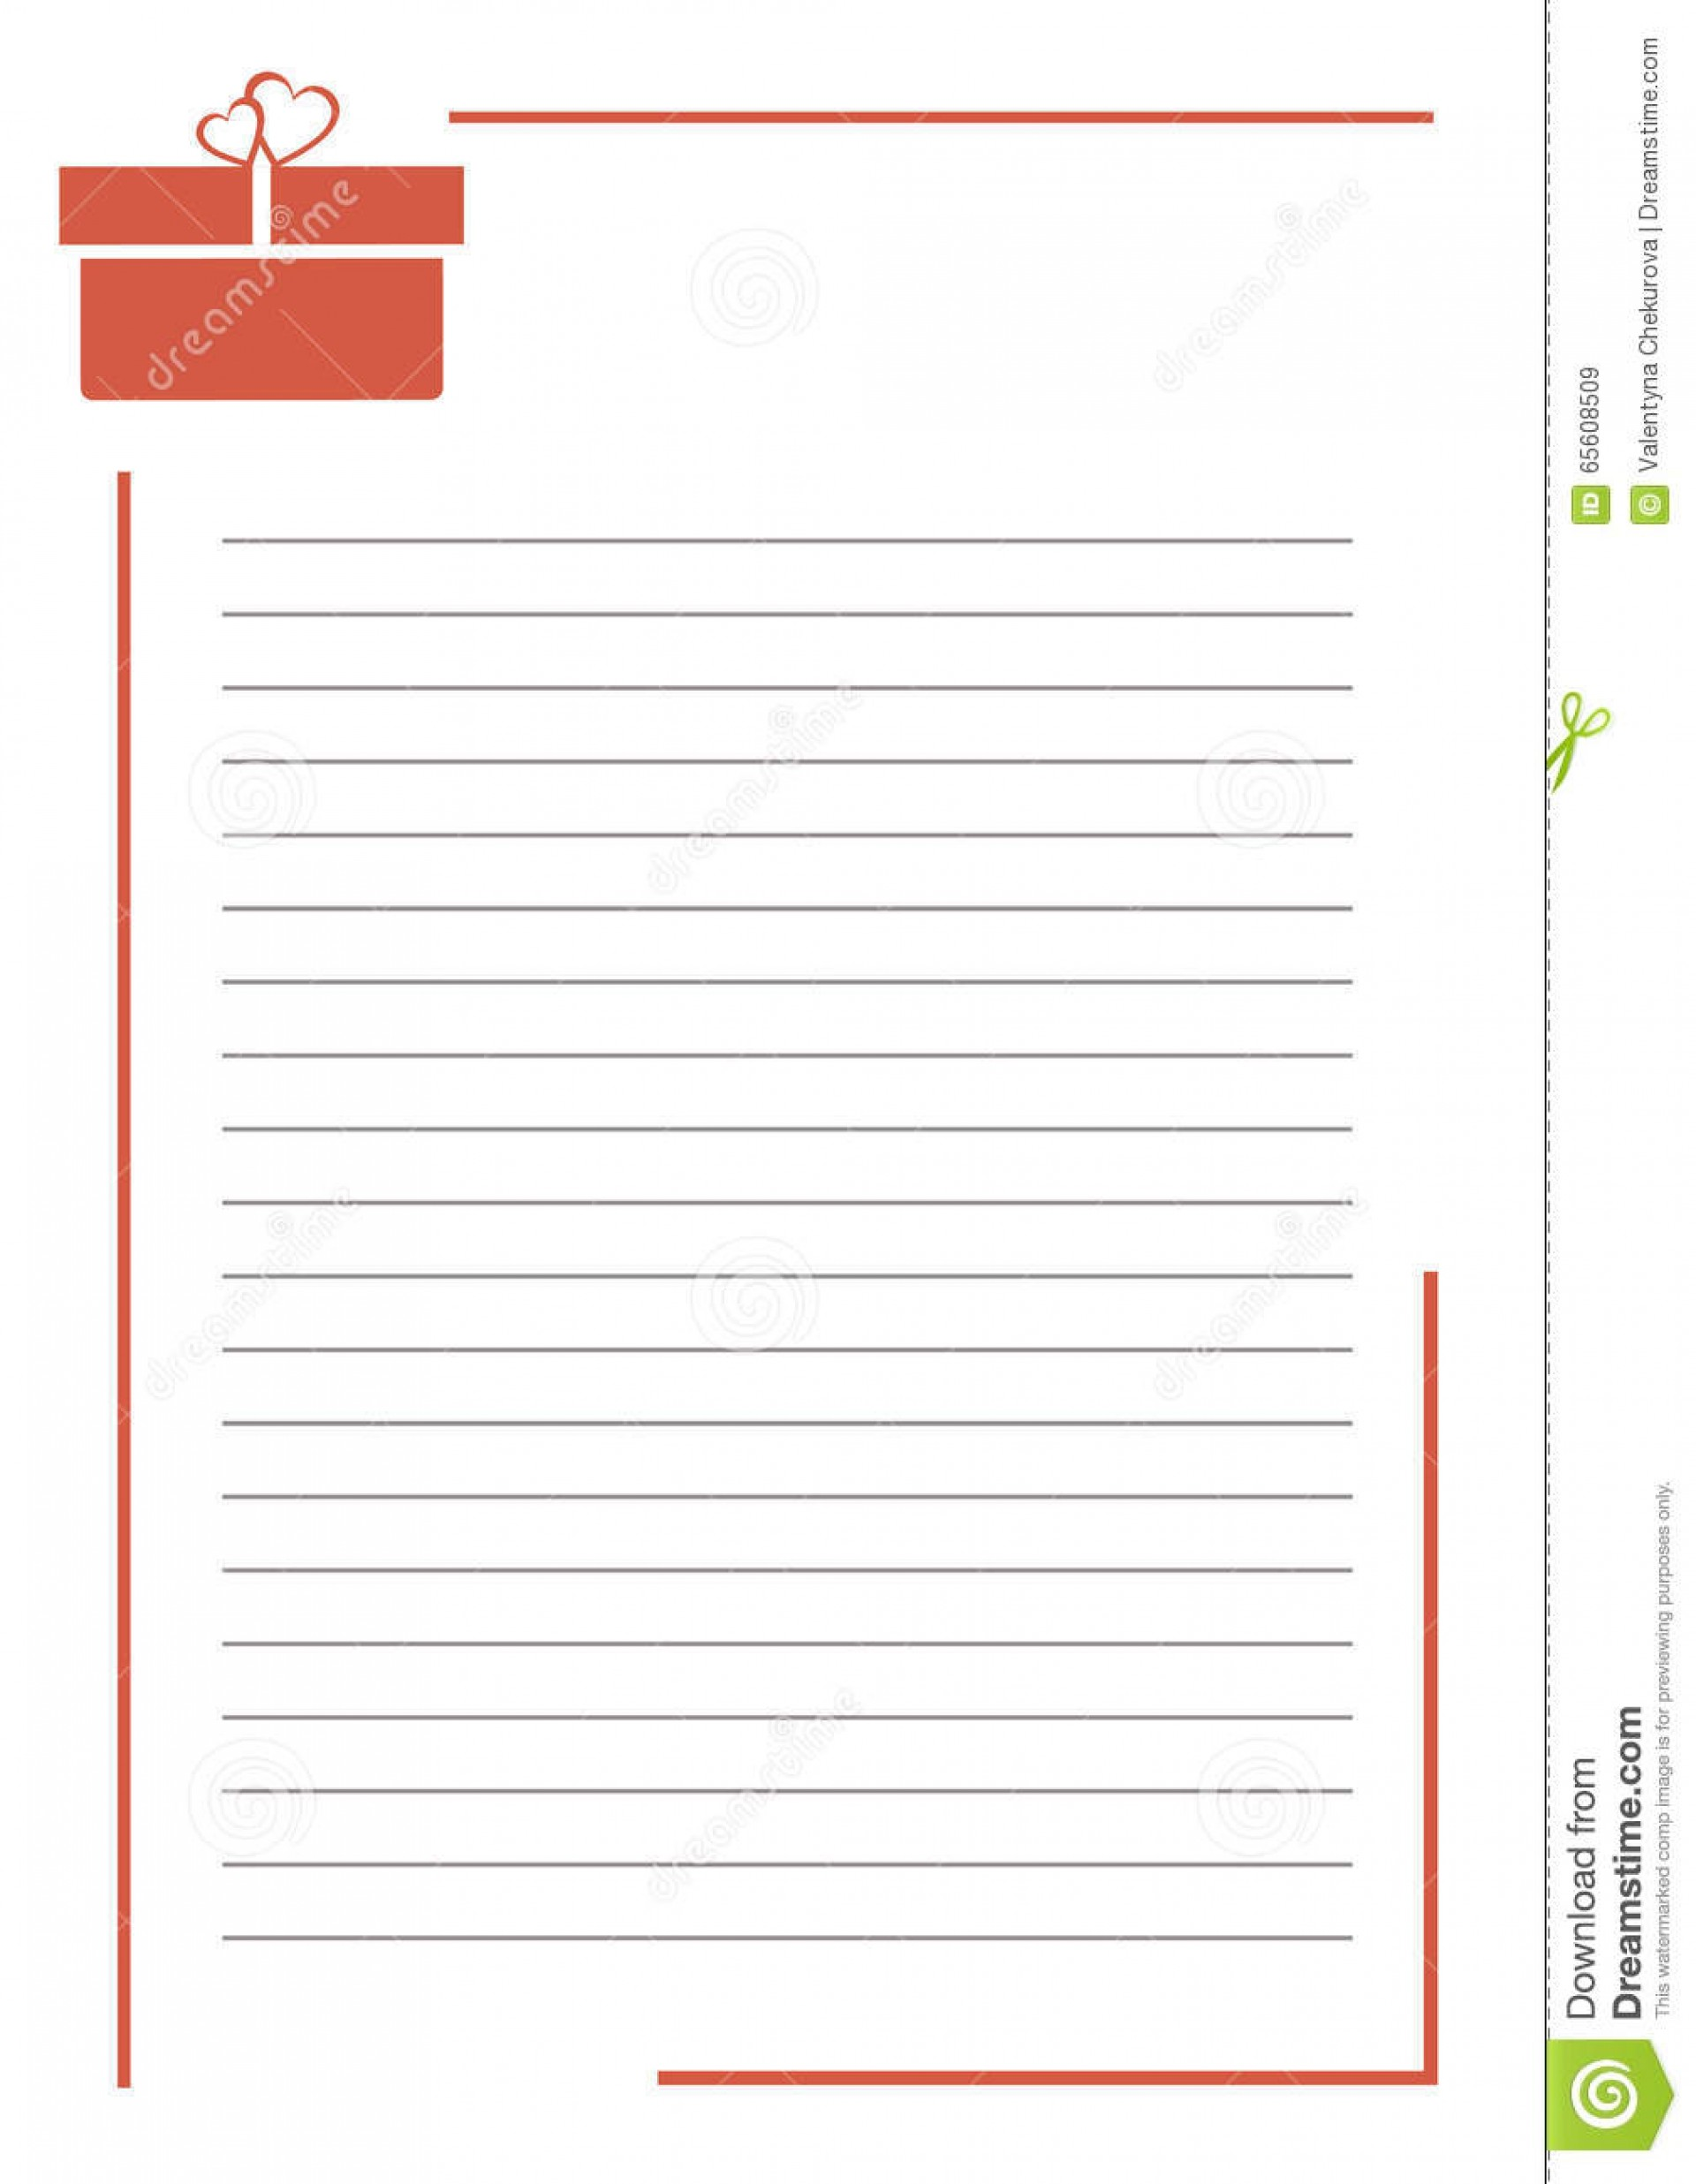 005 Note Cards For Research Paper Vector Blank Letter Greeting Card White Form Red Gift Box Lines Border Format Size Rare Taking Papers System Example Of Notecards 1920